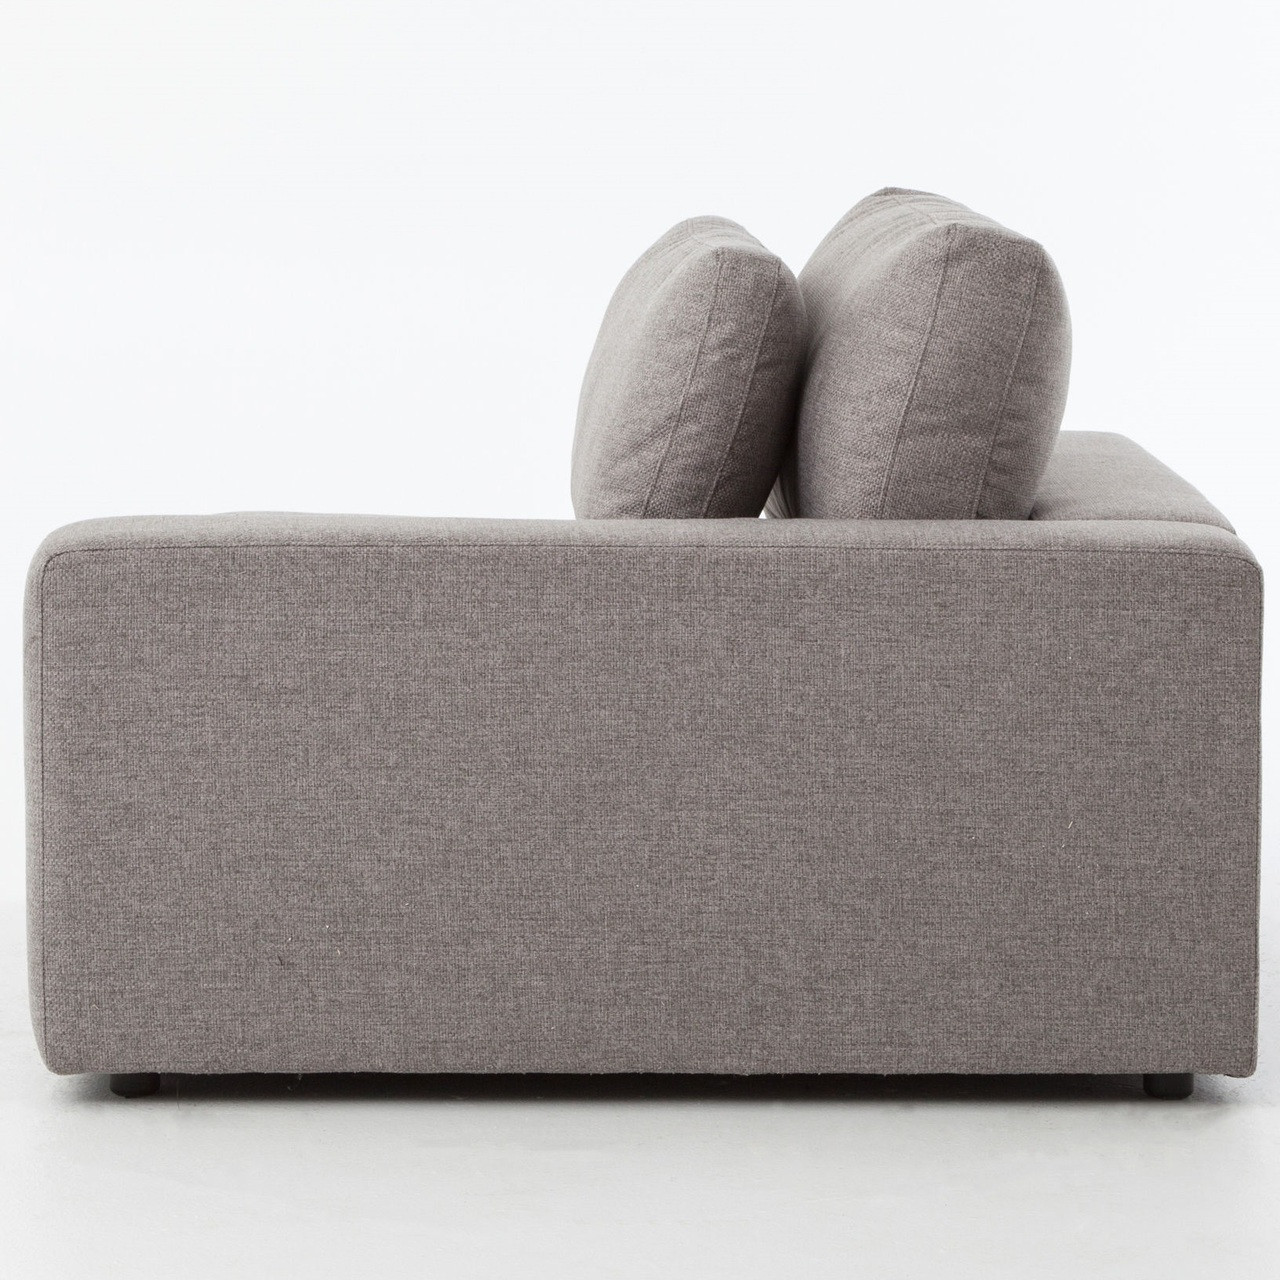 bloor gray 3 piece small sectional sofas - Small Sectional Couch